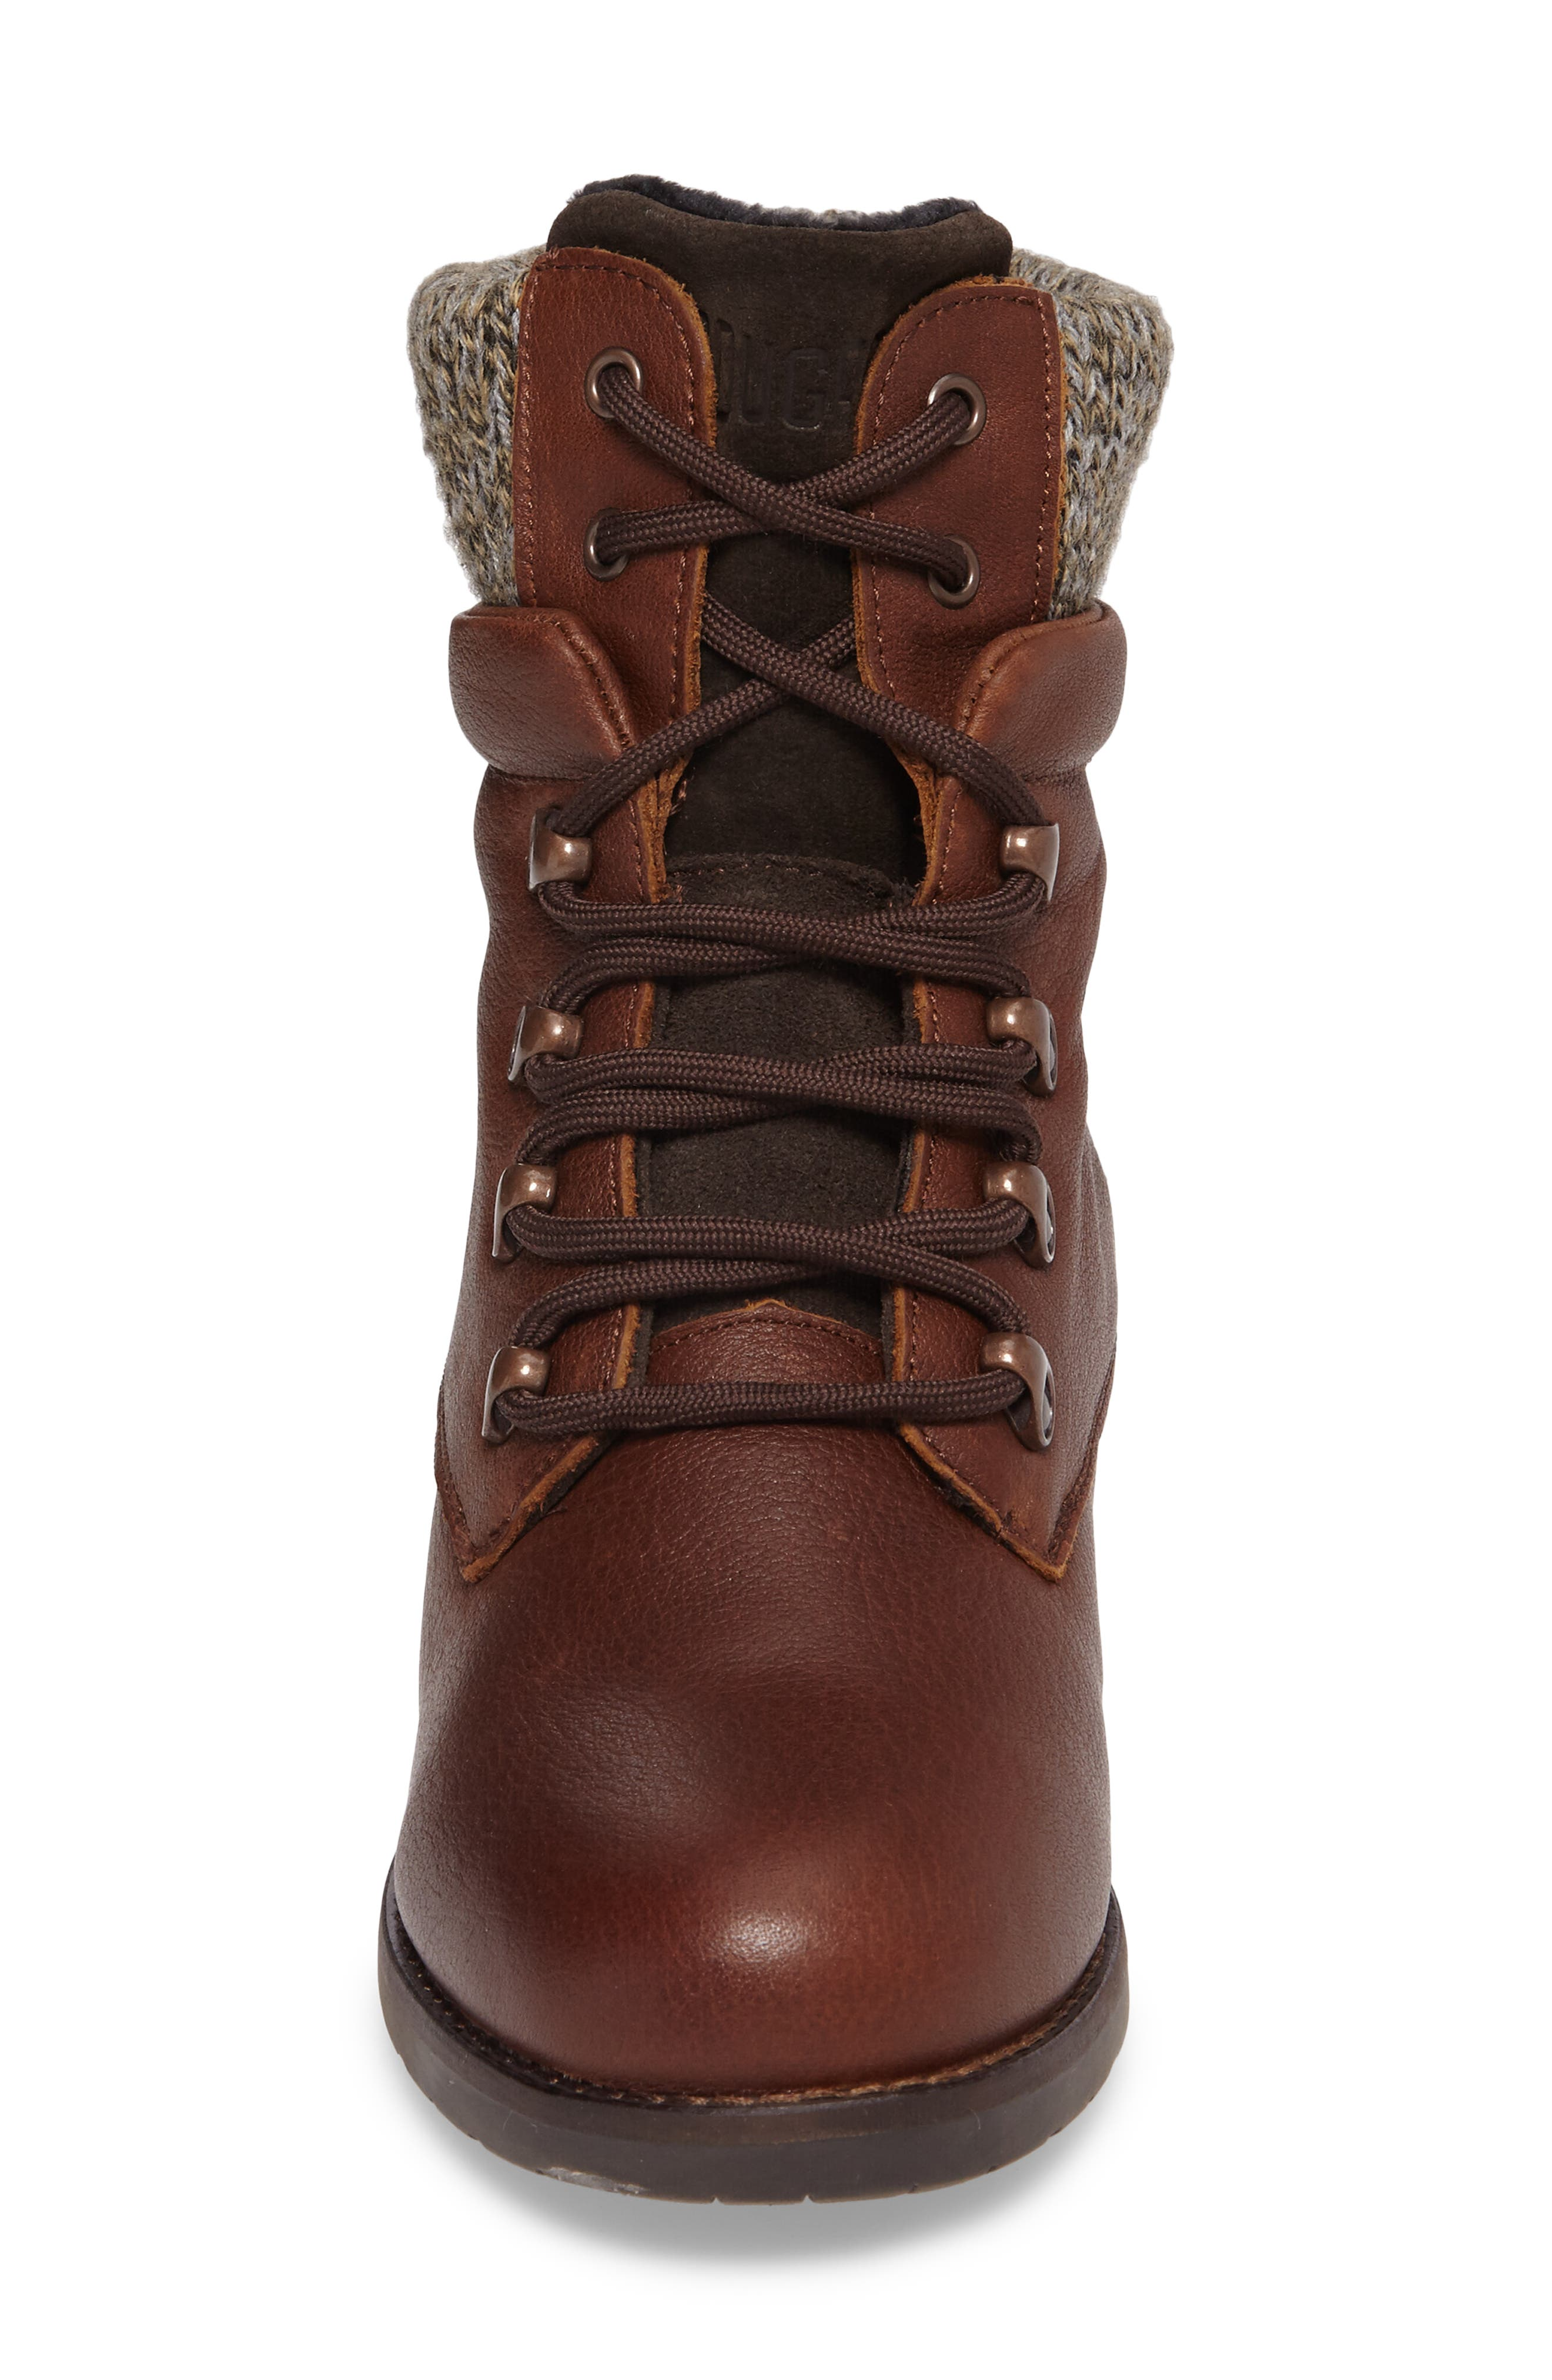 Derry Waterproof Boot,                             Alternate thumbnail 4, color,                             Dark Brown Leather